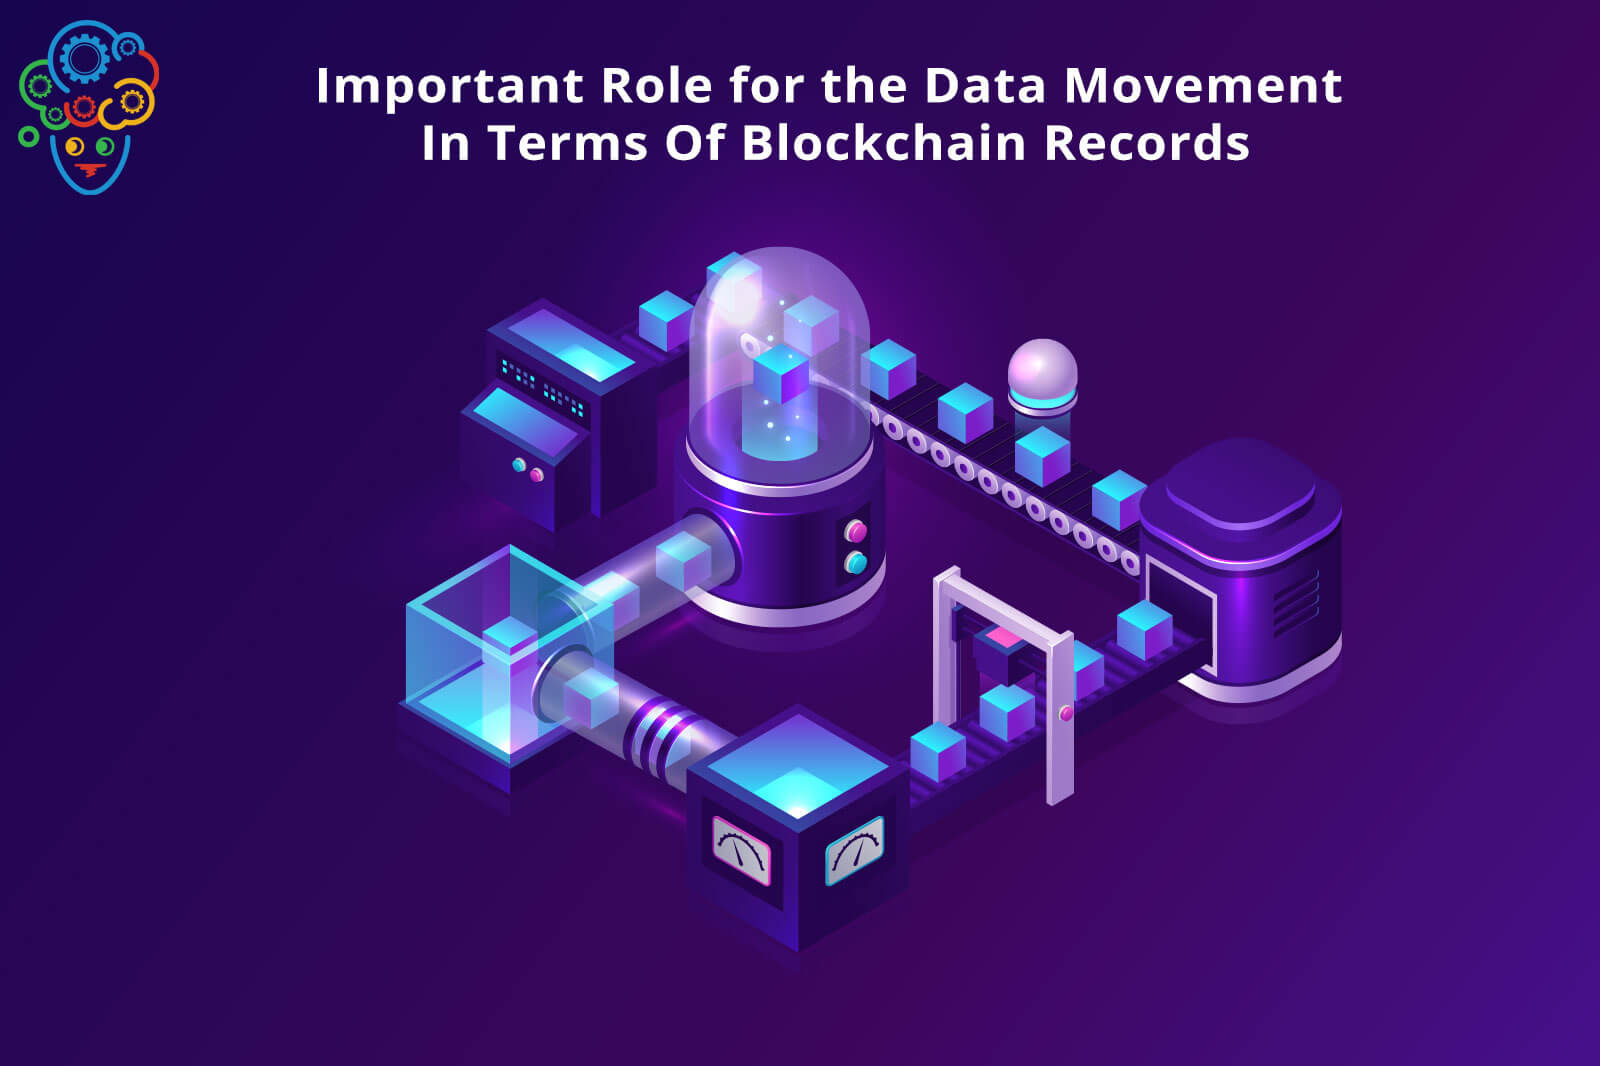 How Data Plays An Important Role for the Data Movement In Terms Of Blockchain Records